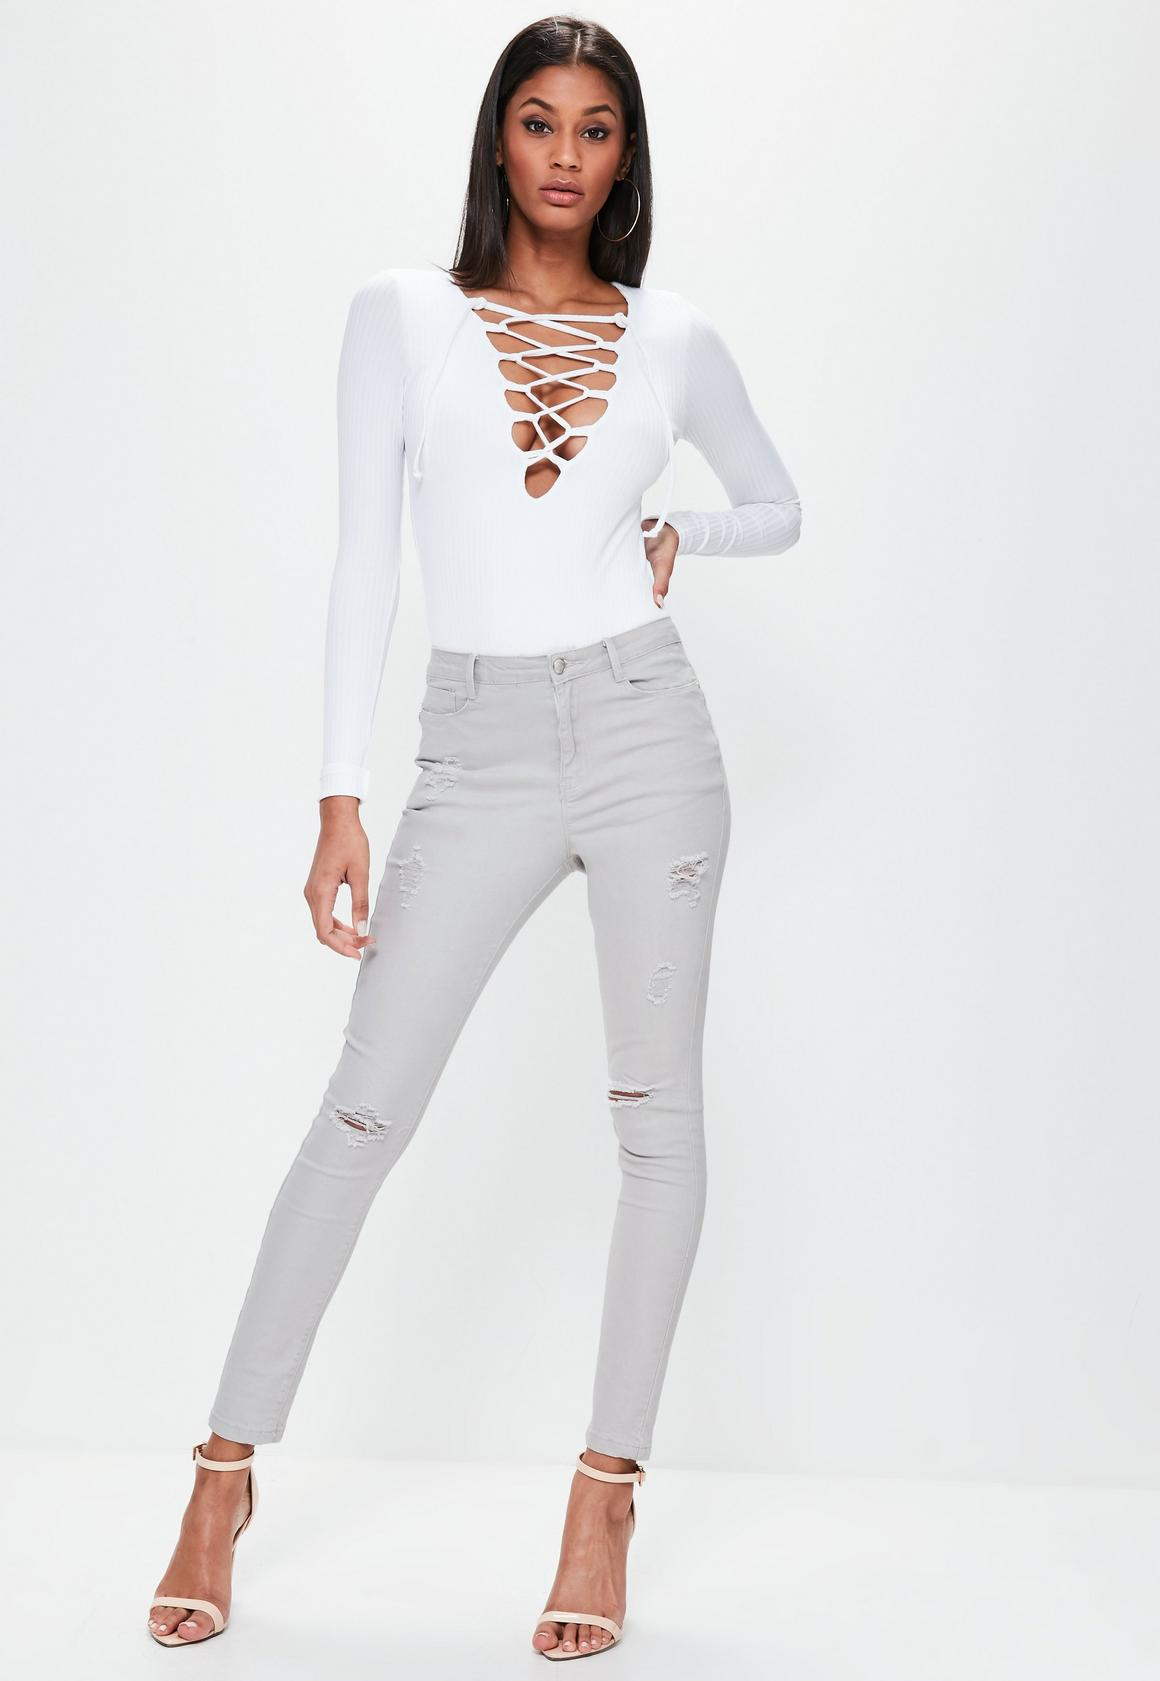 Grey Sinner High Waisted Ripped Skinny Jeans   Missguided